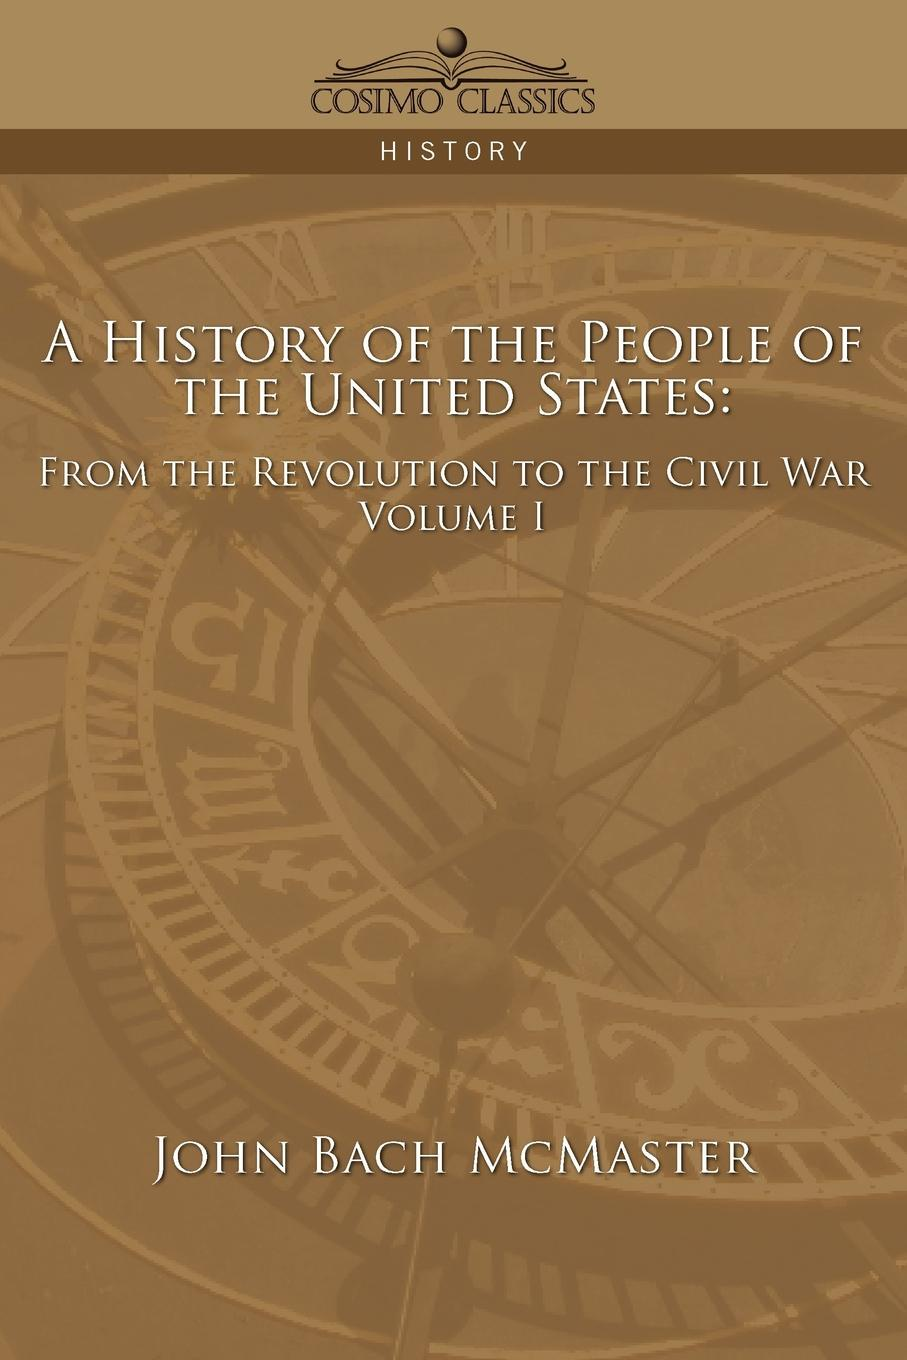 John Bach McMaster A History of the People of the United States. From the Revolution to the Civil War - Volume 1 william abbatt a history of the united states and its people from their earliest records to the present time volume 6